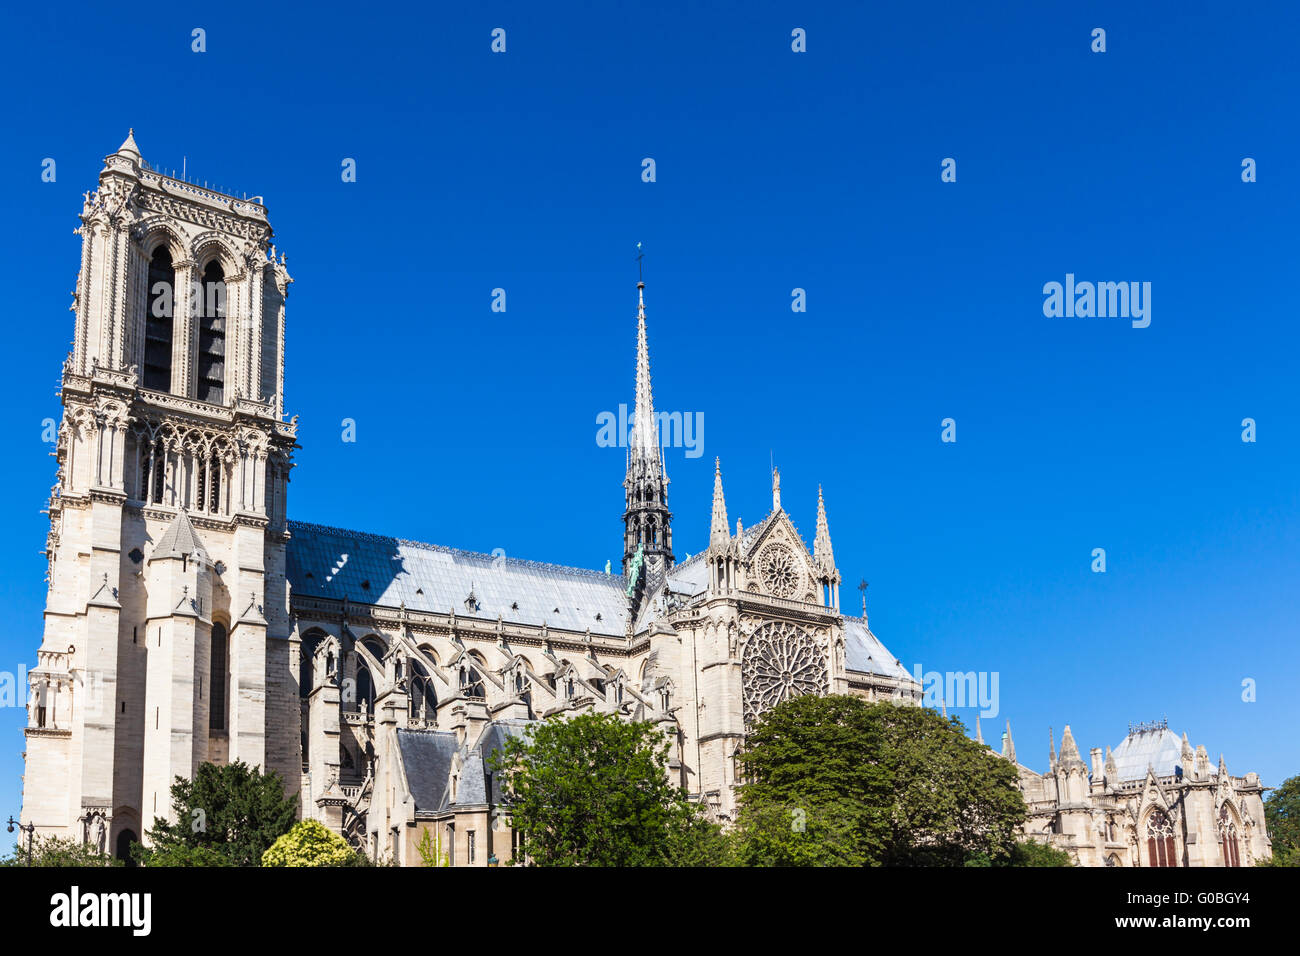 Notre Dame Cathedral onthe river side of Seine in Paris, France, which is widely considered to be one of the finest - Stock Image